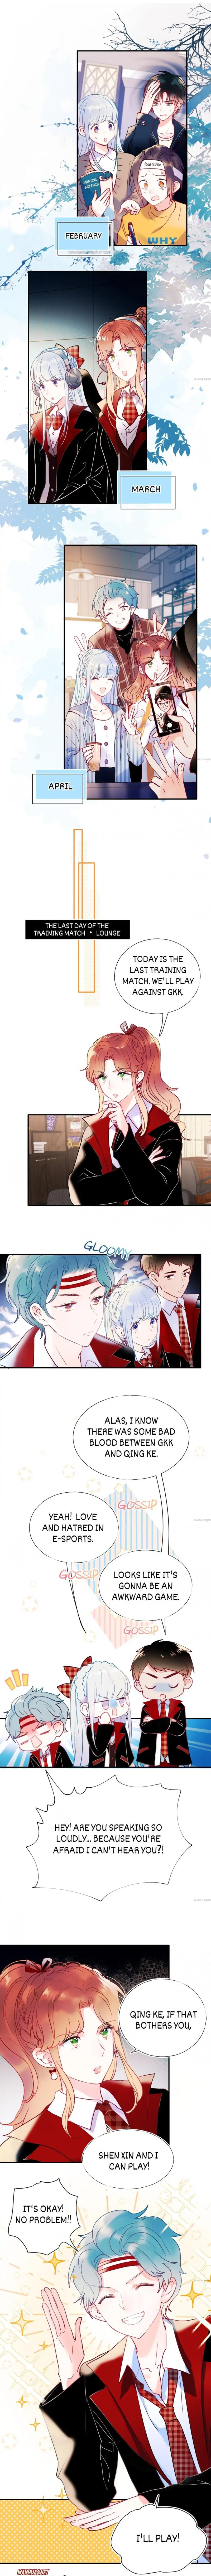 To be Winner - chapter 73 - #1